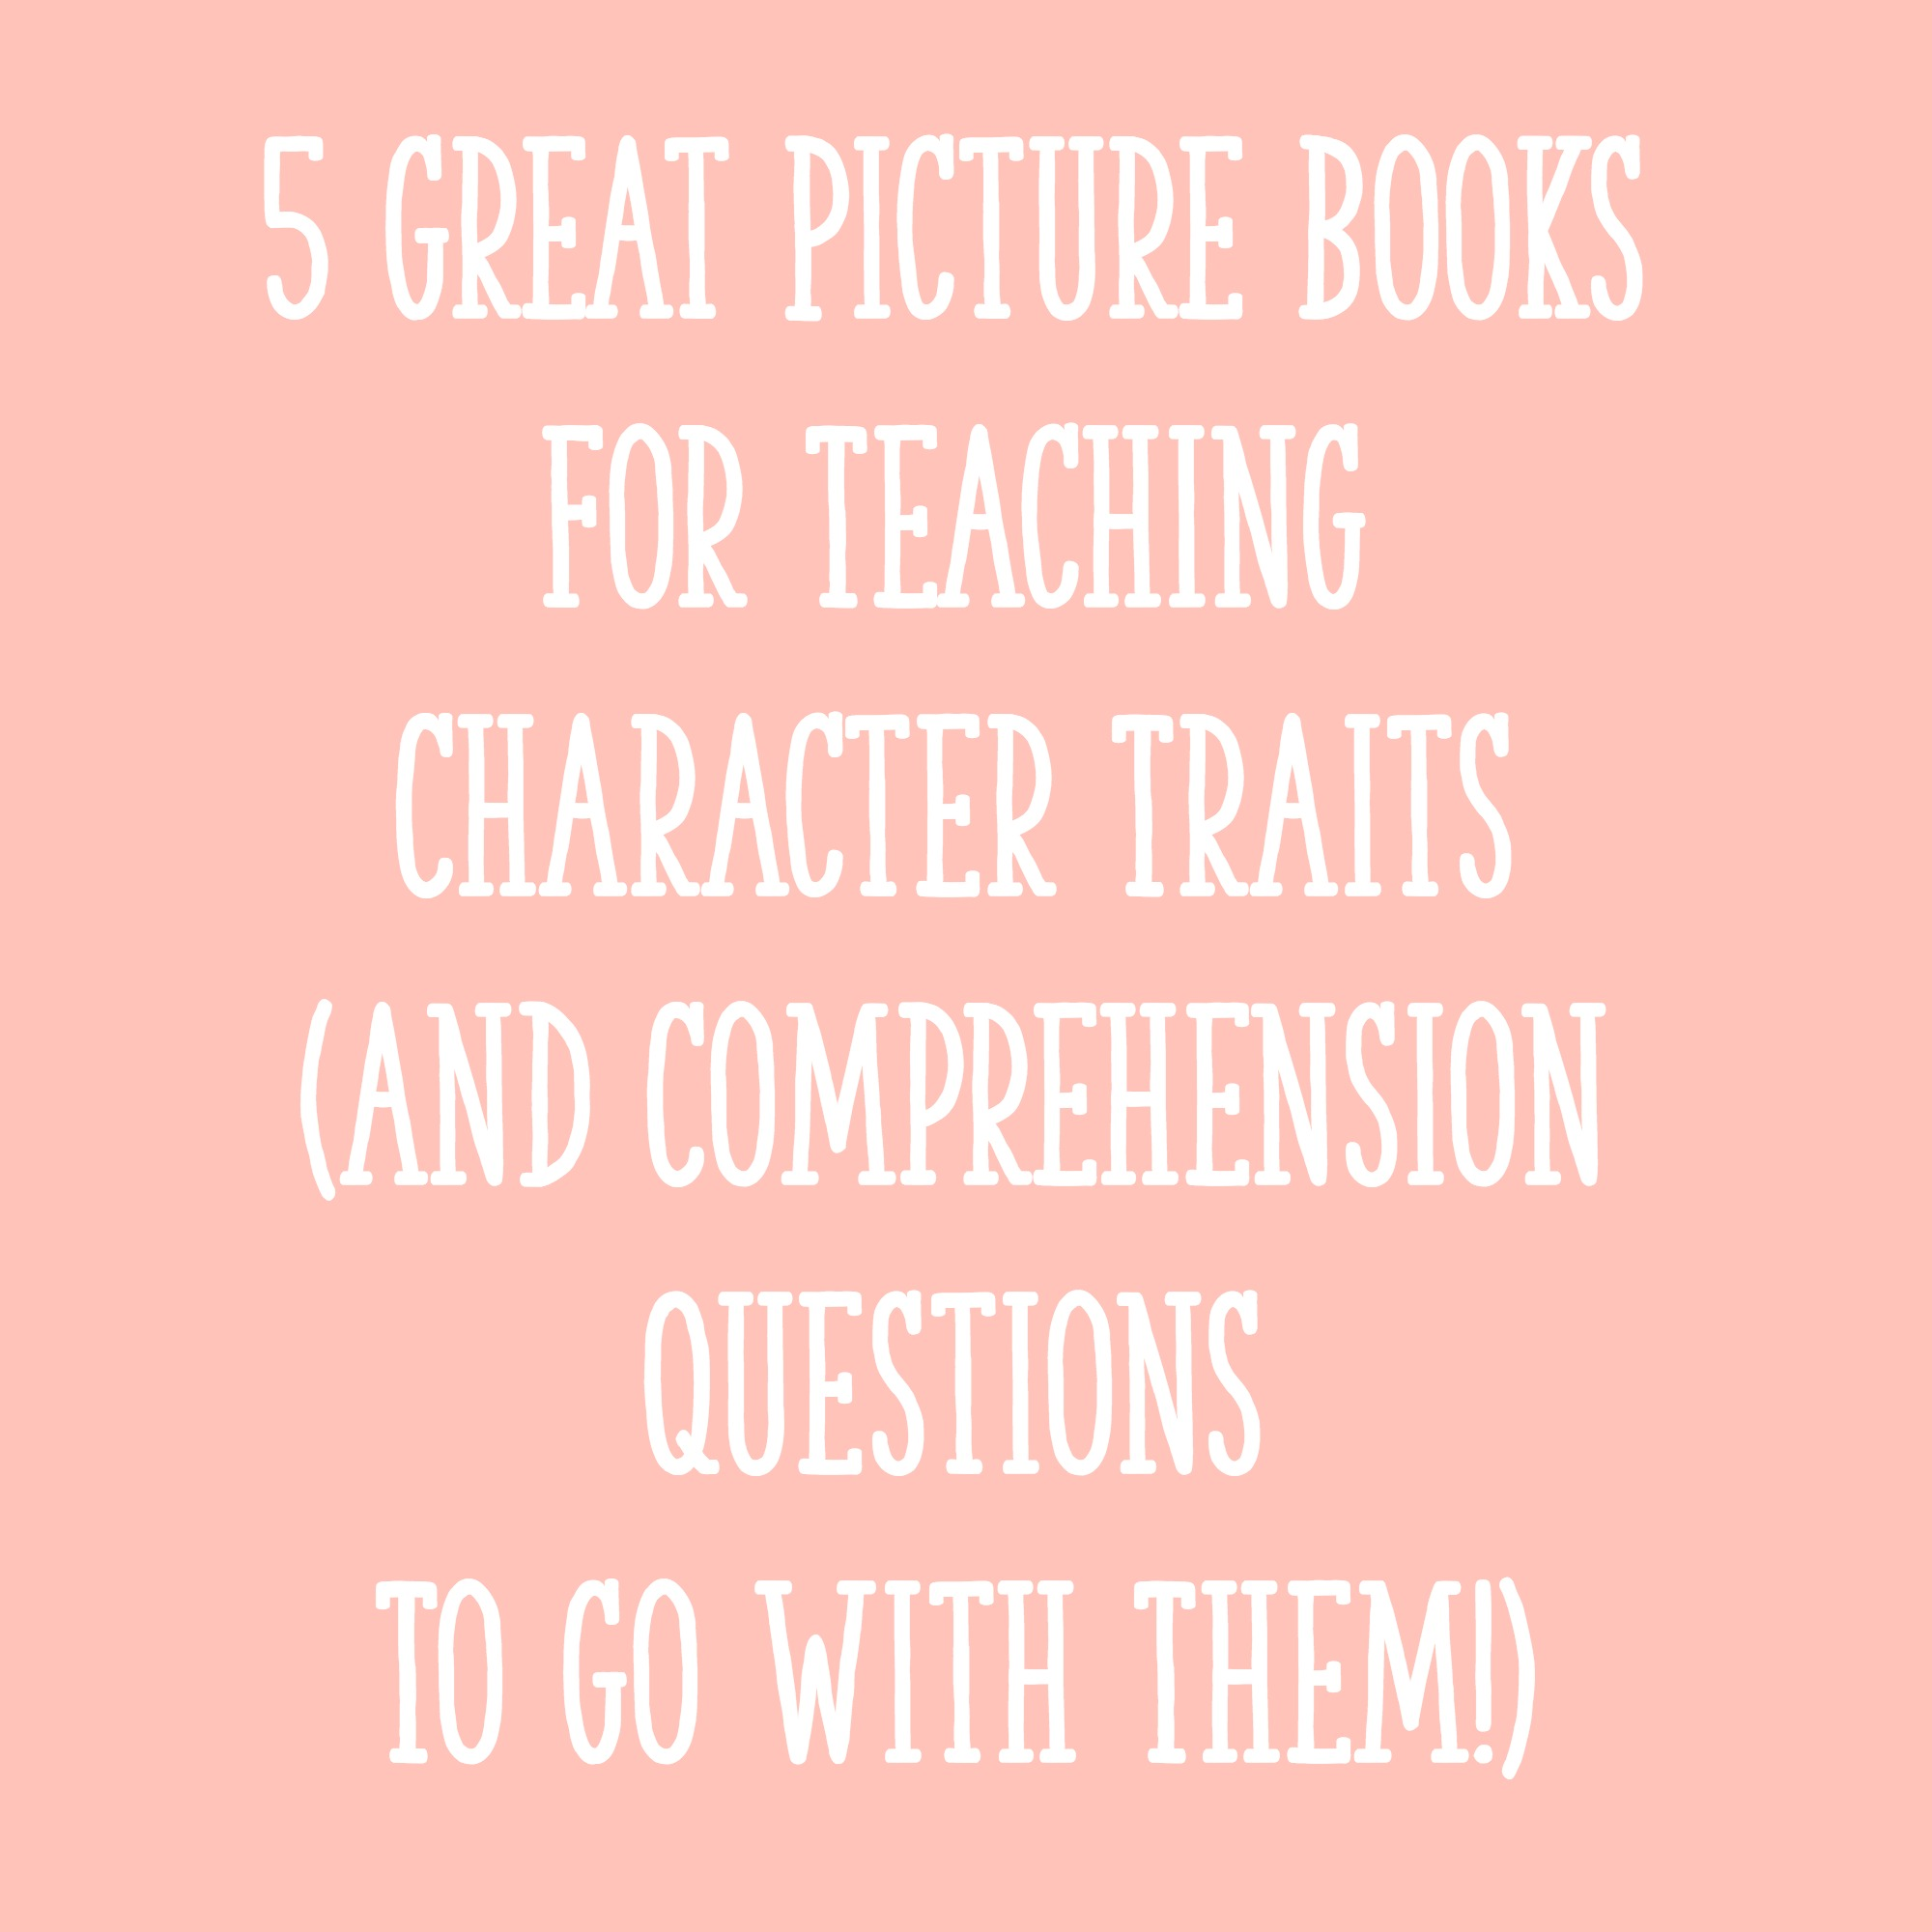 5 Great Picture Books For Teaching Character Traits And